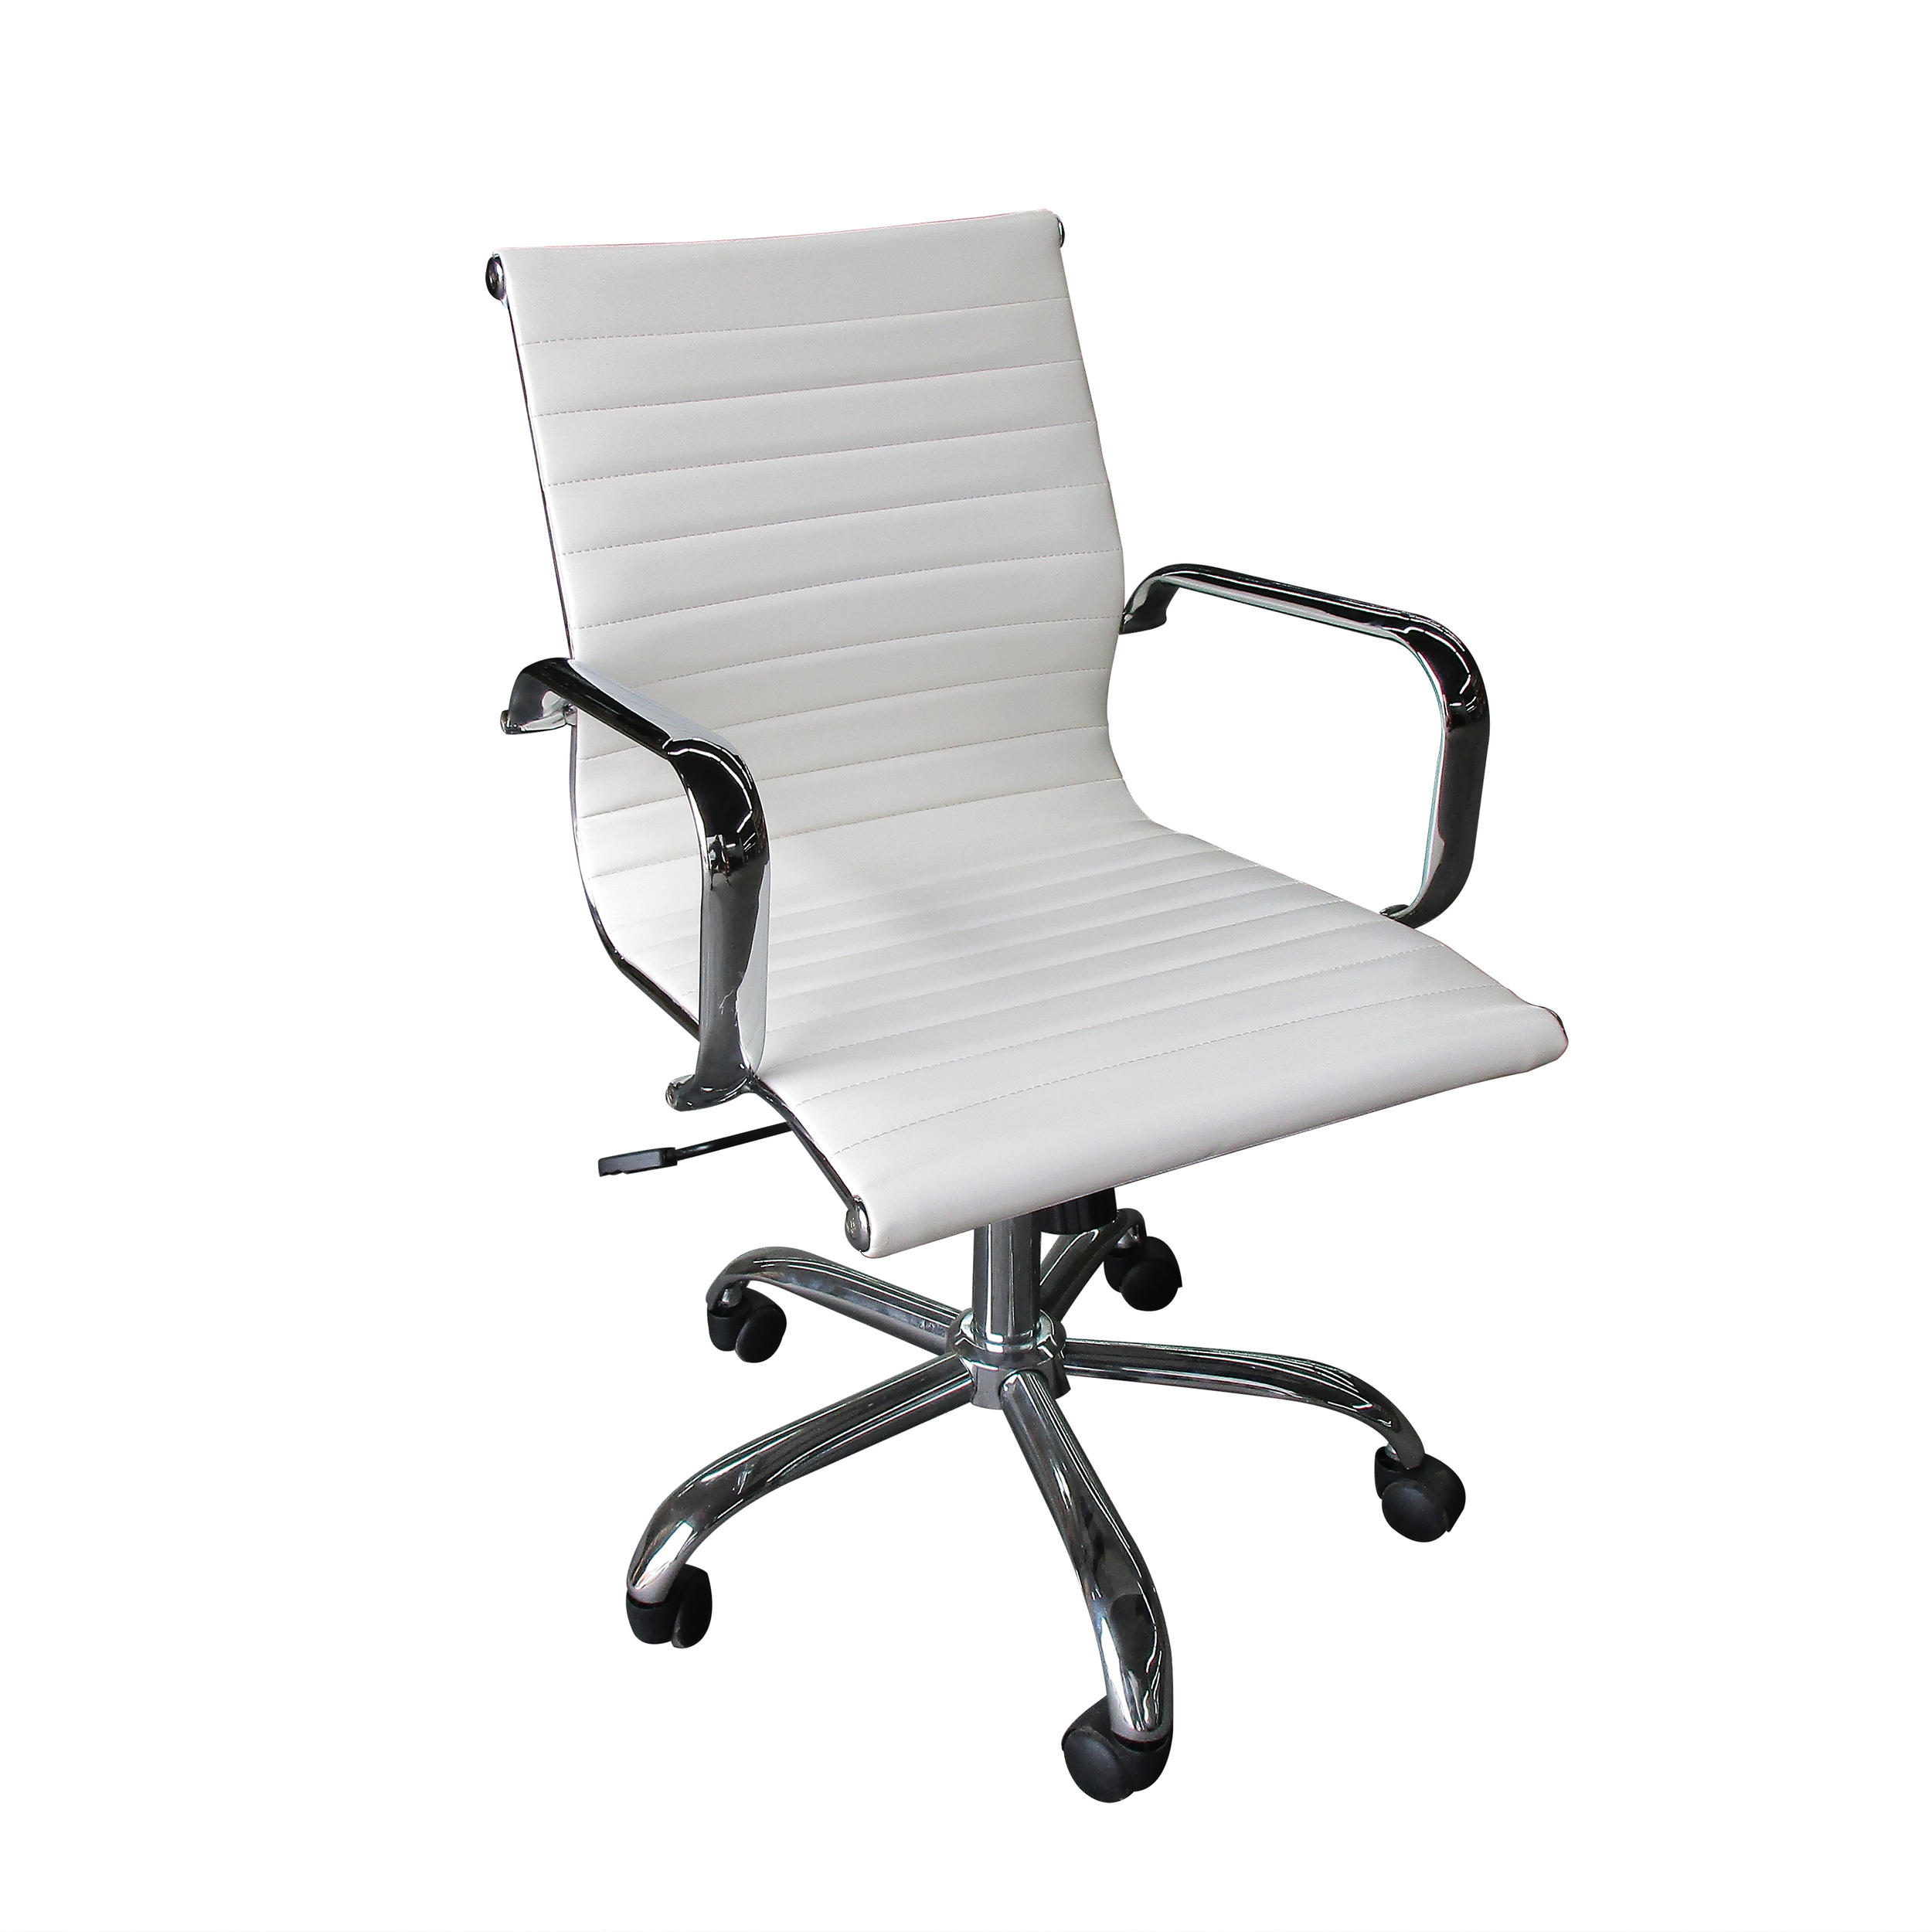 white+ribbed+swivel+chair+reduced+file+size.jpg